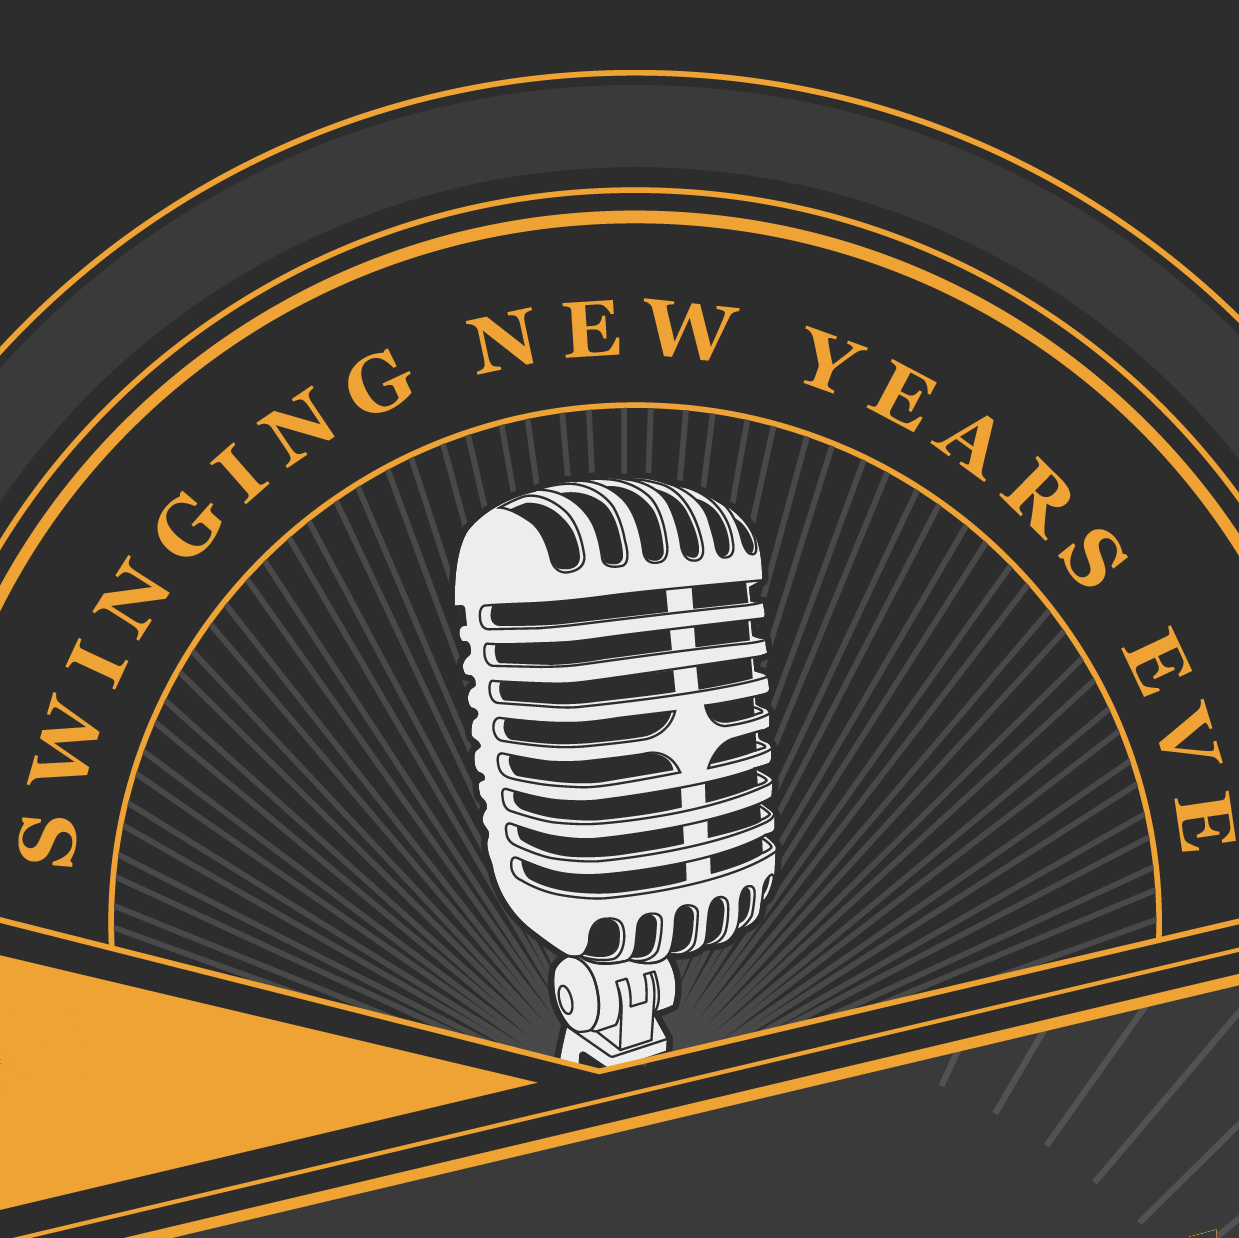 FIVEBAR NEW YEARS EVE 2018 website image.png